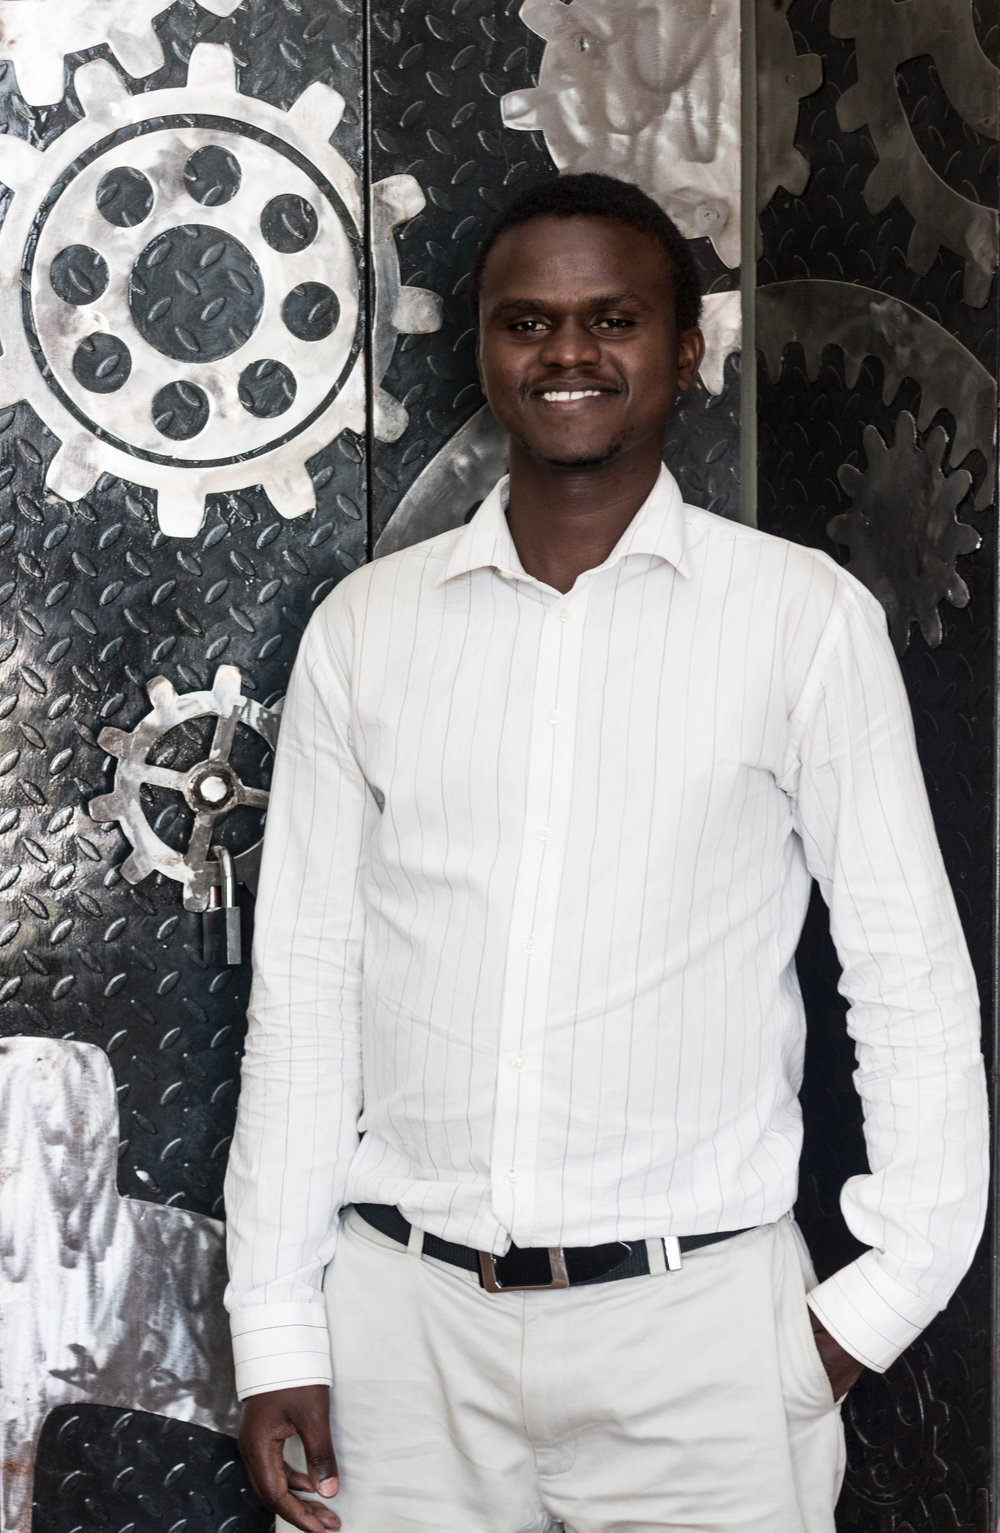 Mechanical engineer, Sato Bonface Kariuki